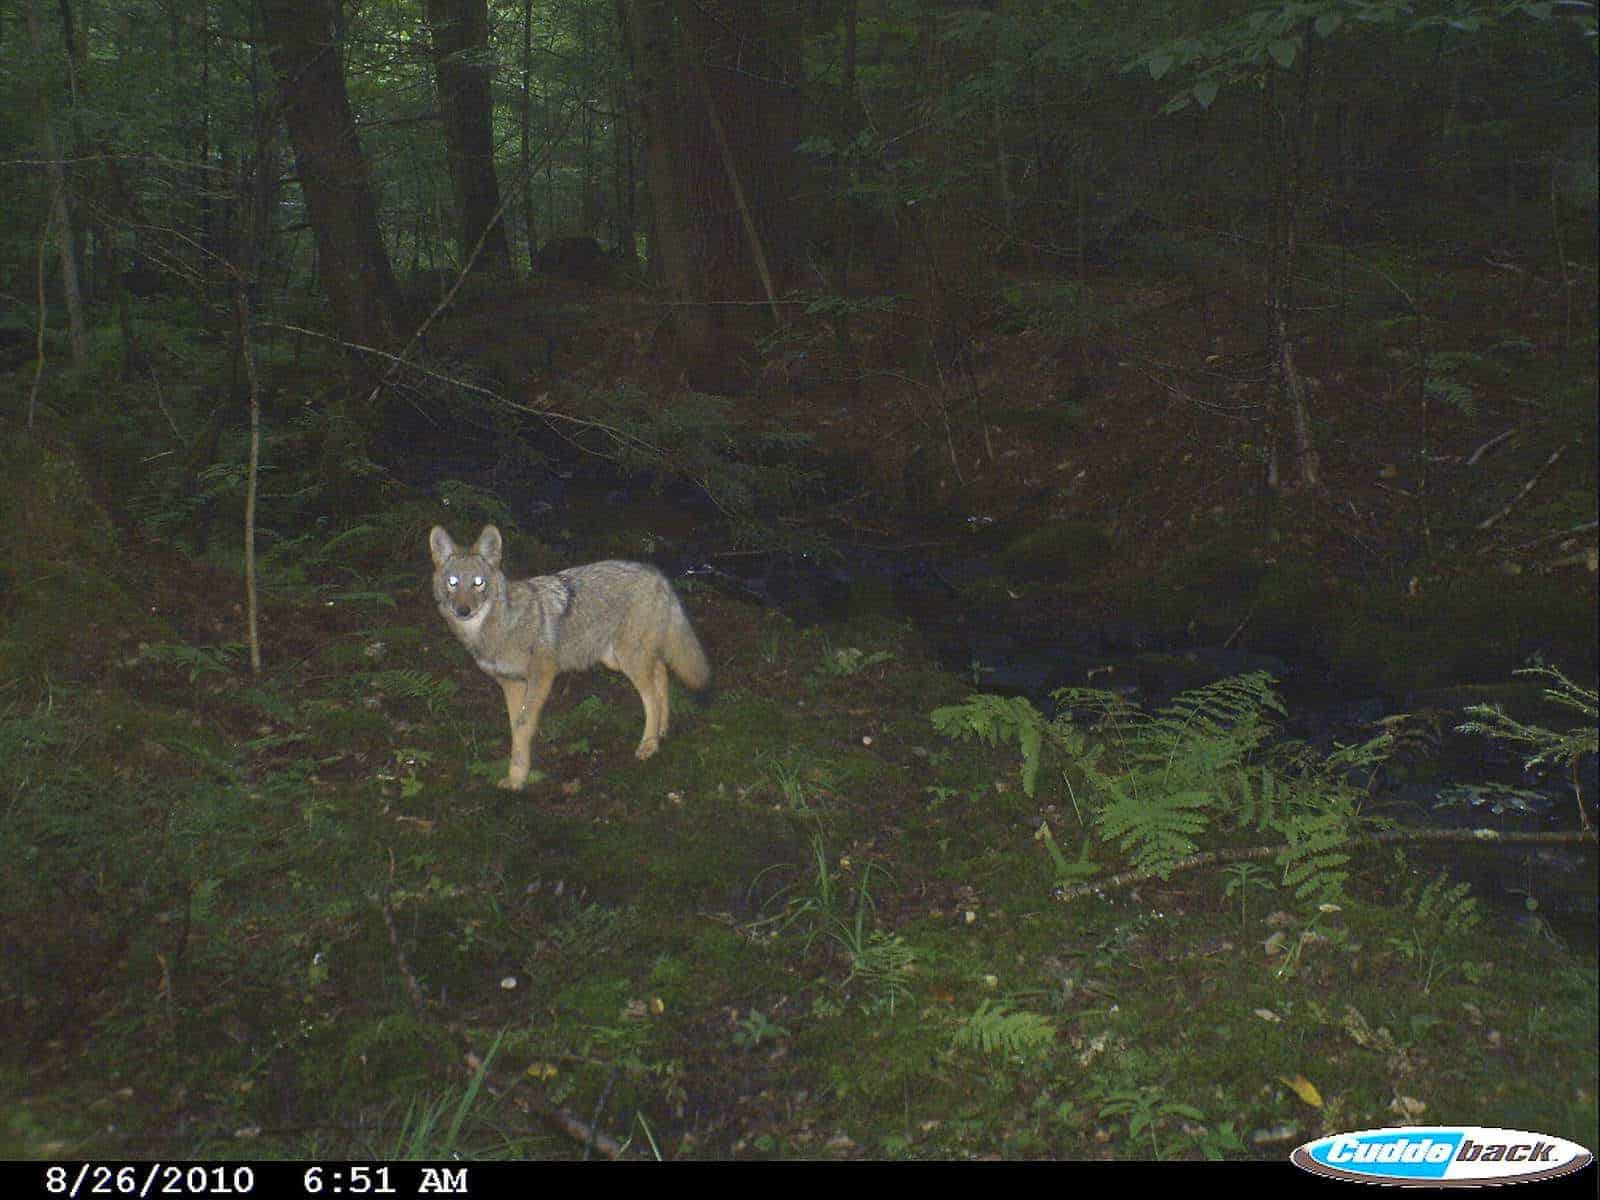 Coyote, New Hampshire